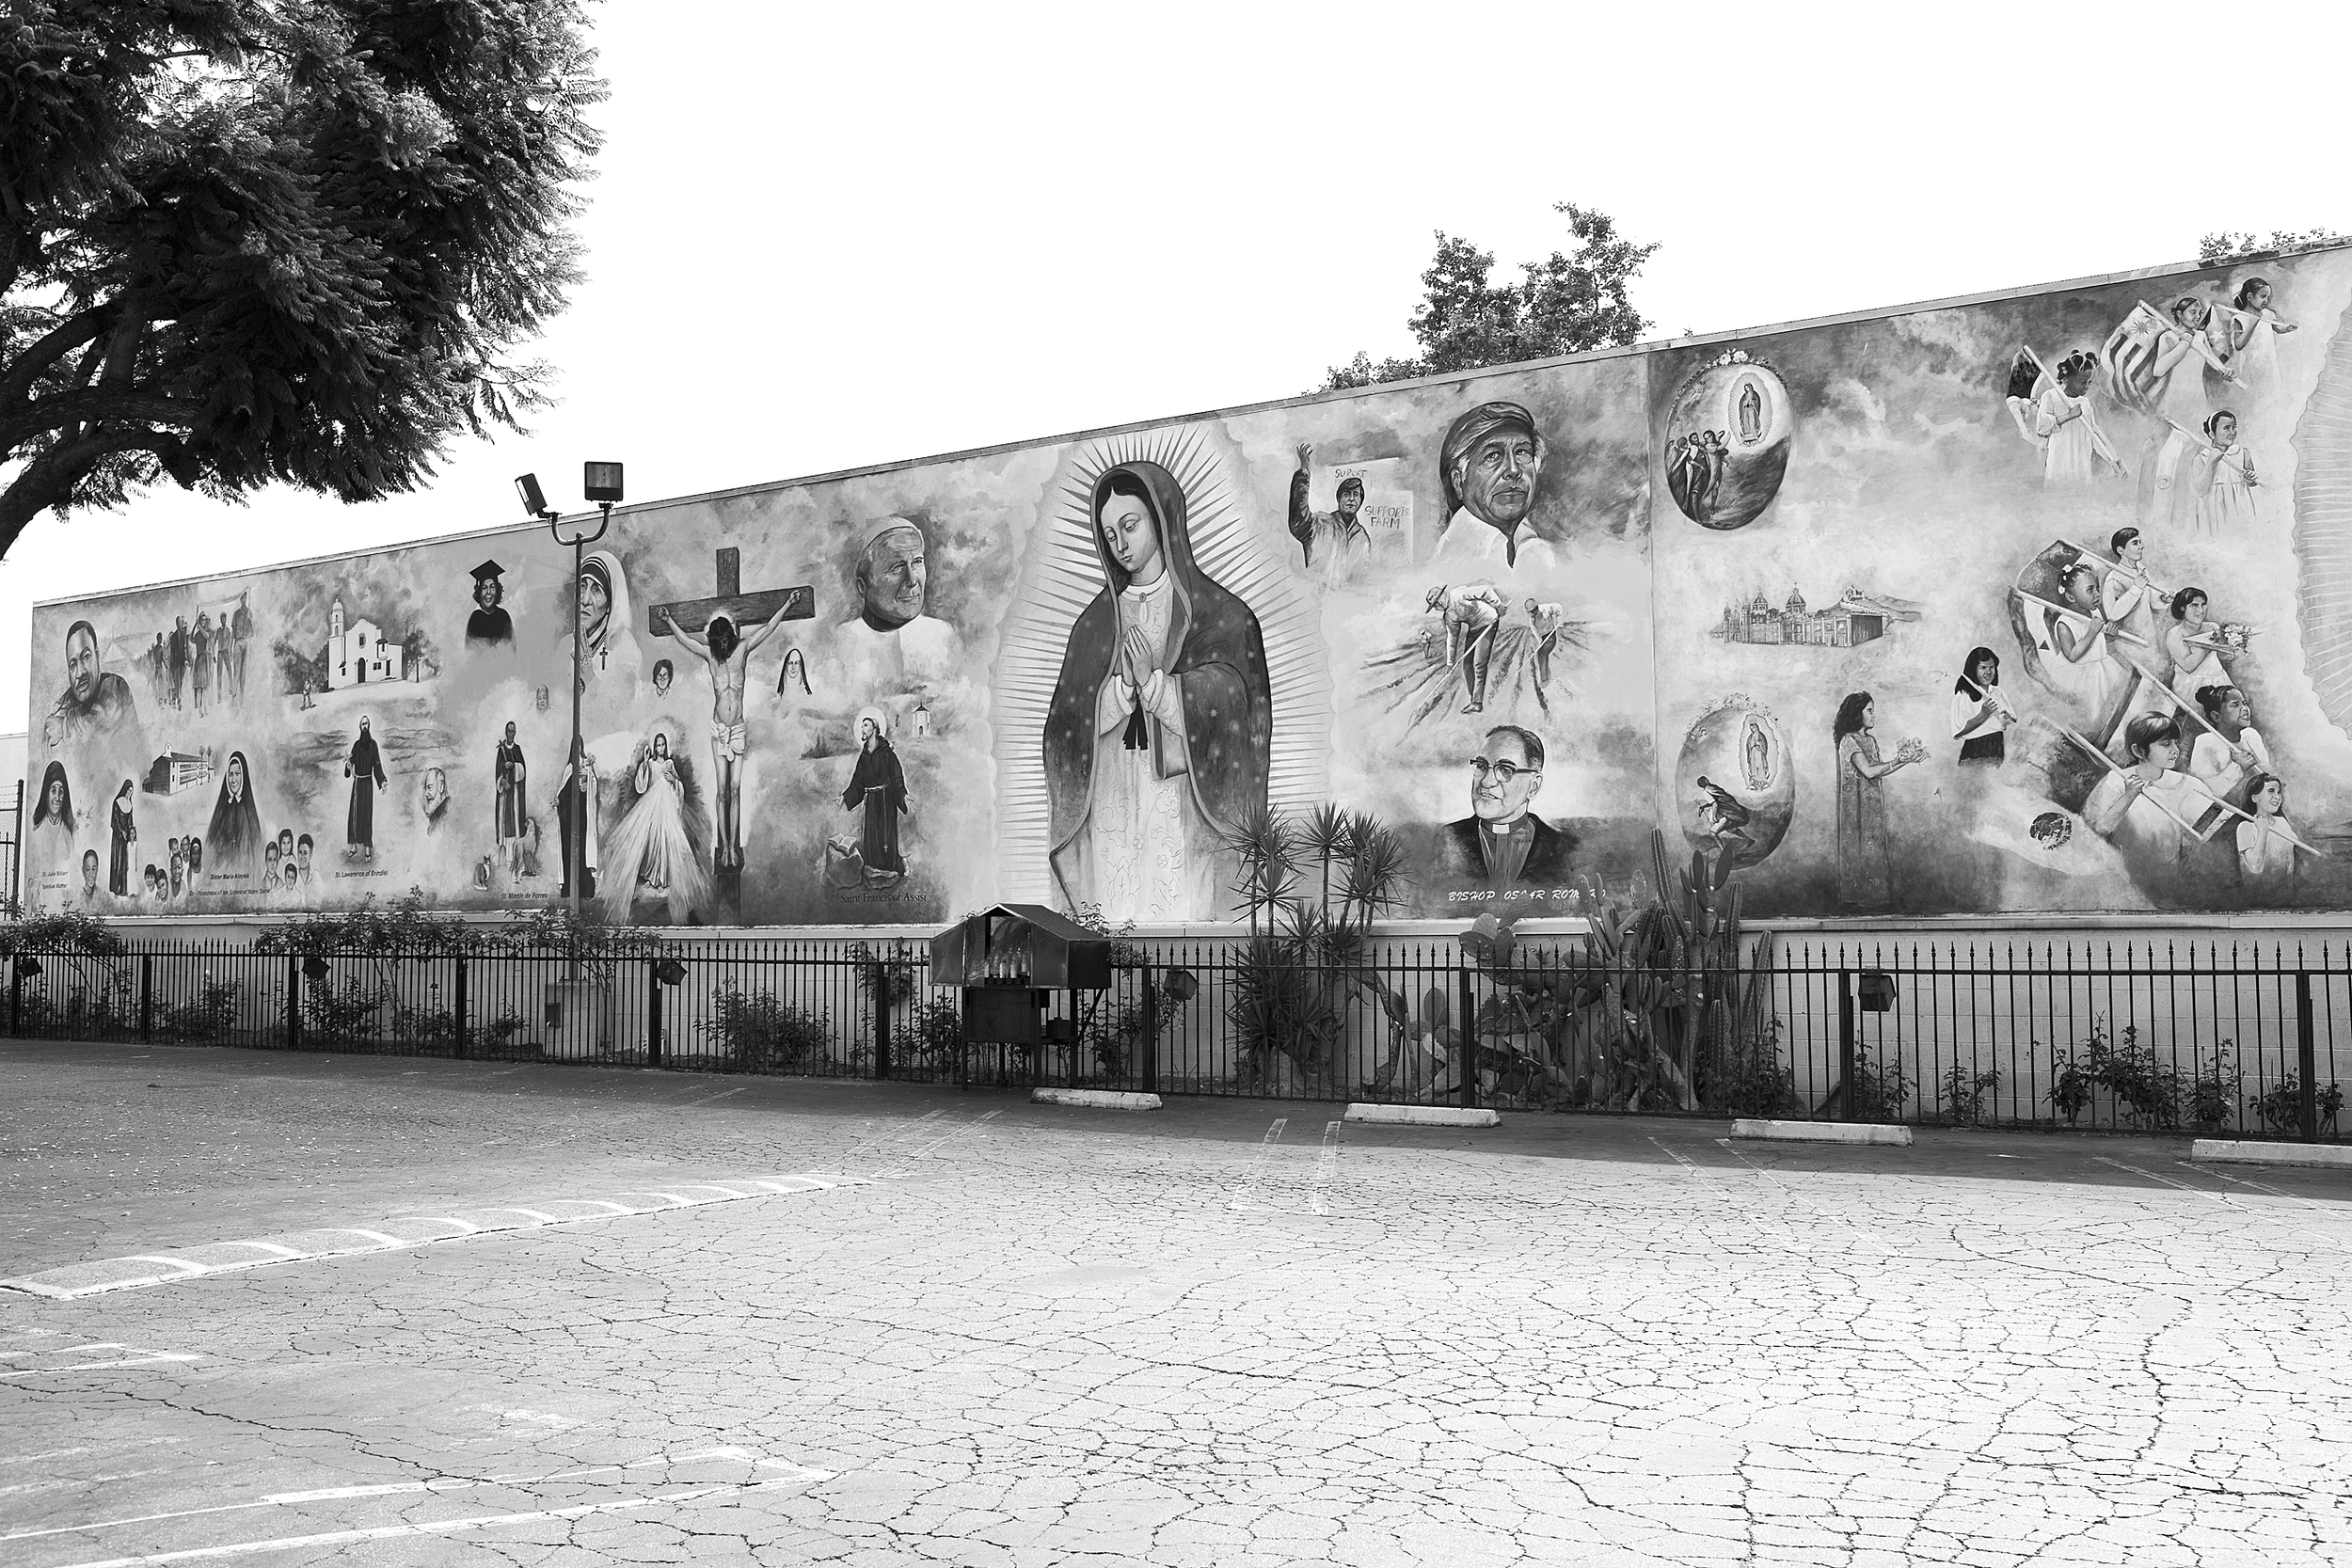 """""""Hope,"""" a mural by Miguel Ramirez depicting Catholic religious figures, Black civil rights leaders, and images of Central American political struggles, St. Lawrence of Brindisi Church, Watts, South Los Angeles. In recent years, Irish pastor Peter Banks, who gives services in English and Spanish, has made efforts to bring together local Black and Latina/o populations, in particular those who live in the nearby Nickerson Gardens housing projects. According to the artist, the mural, completed in 2000, was intended to bring the people of Compton """"hope and dreams"""" at the opening of the new century. 2009. Copyright Miguel Ramirez.                                0     false             18 pt     18 pt     0     0         false     false     false                                                     /* Style Definitions */ table.MsoNormalTable {mso-style-name:""""Table Normal""""; mso-tstyle-rowband-size:0; mso-tstyle-colband-size:0; mso-style-noshow:yes; mso-style-parent:""""""""; mso-padding-alt:0in 5.4pt 0in 5.4pt; mso-para-margin:0in; mso-para-margin-bottom:.0001pt; mso-pagination:widow-orphan; font-size:10.0pt; font-family:""""Times New Roman"""";}"""